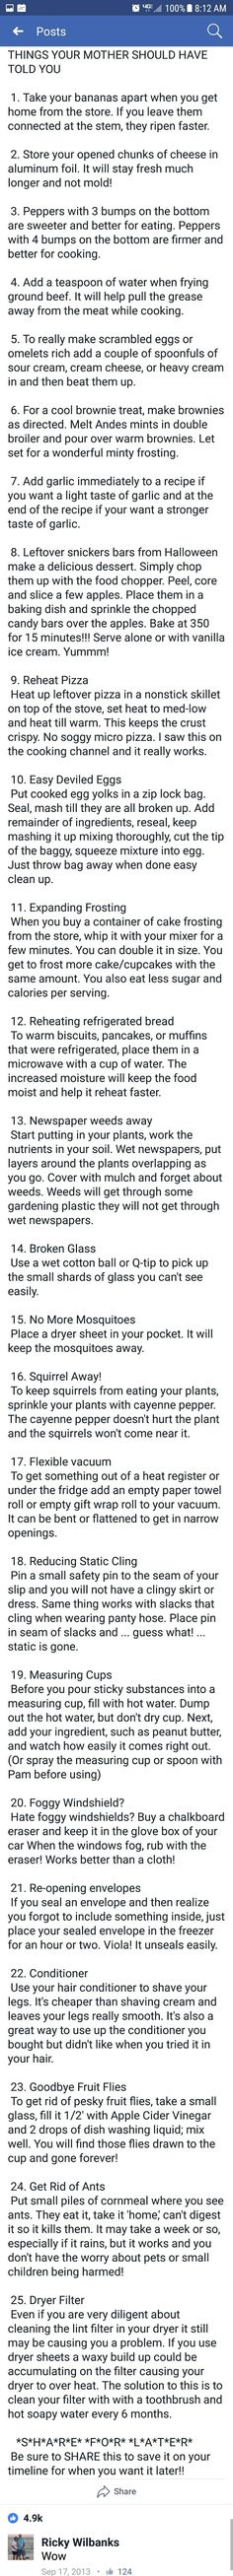 Things your momma should have told you..